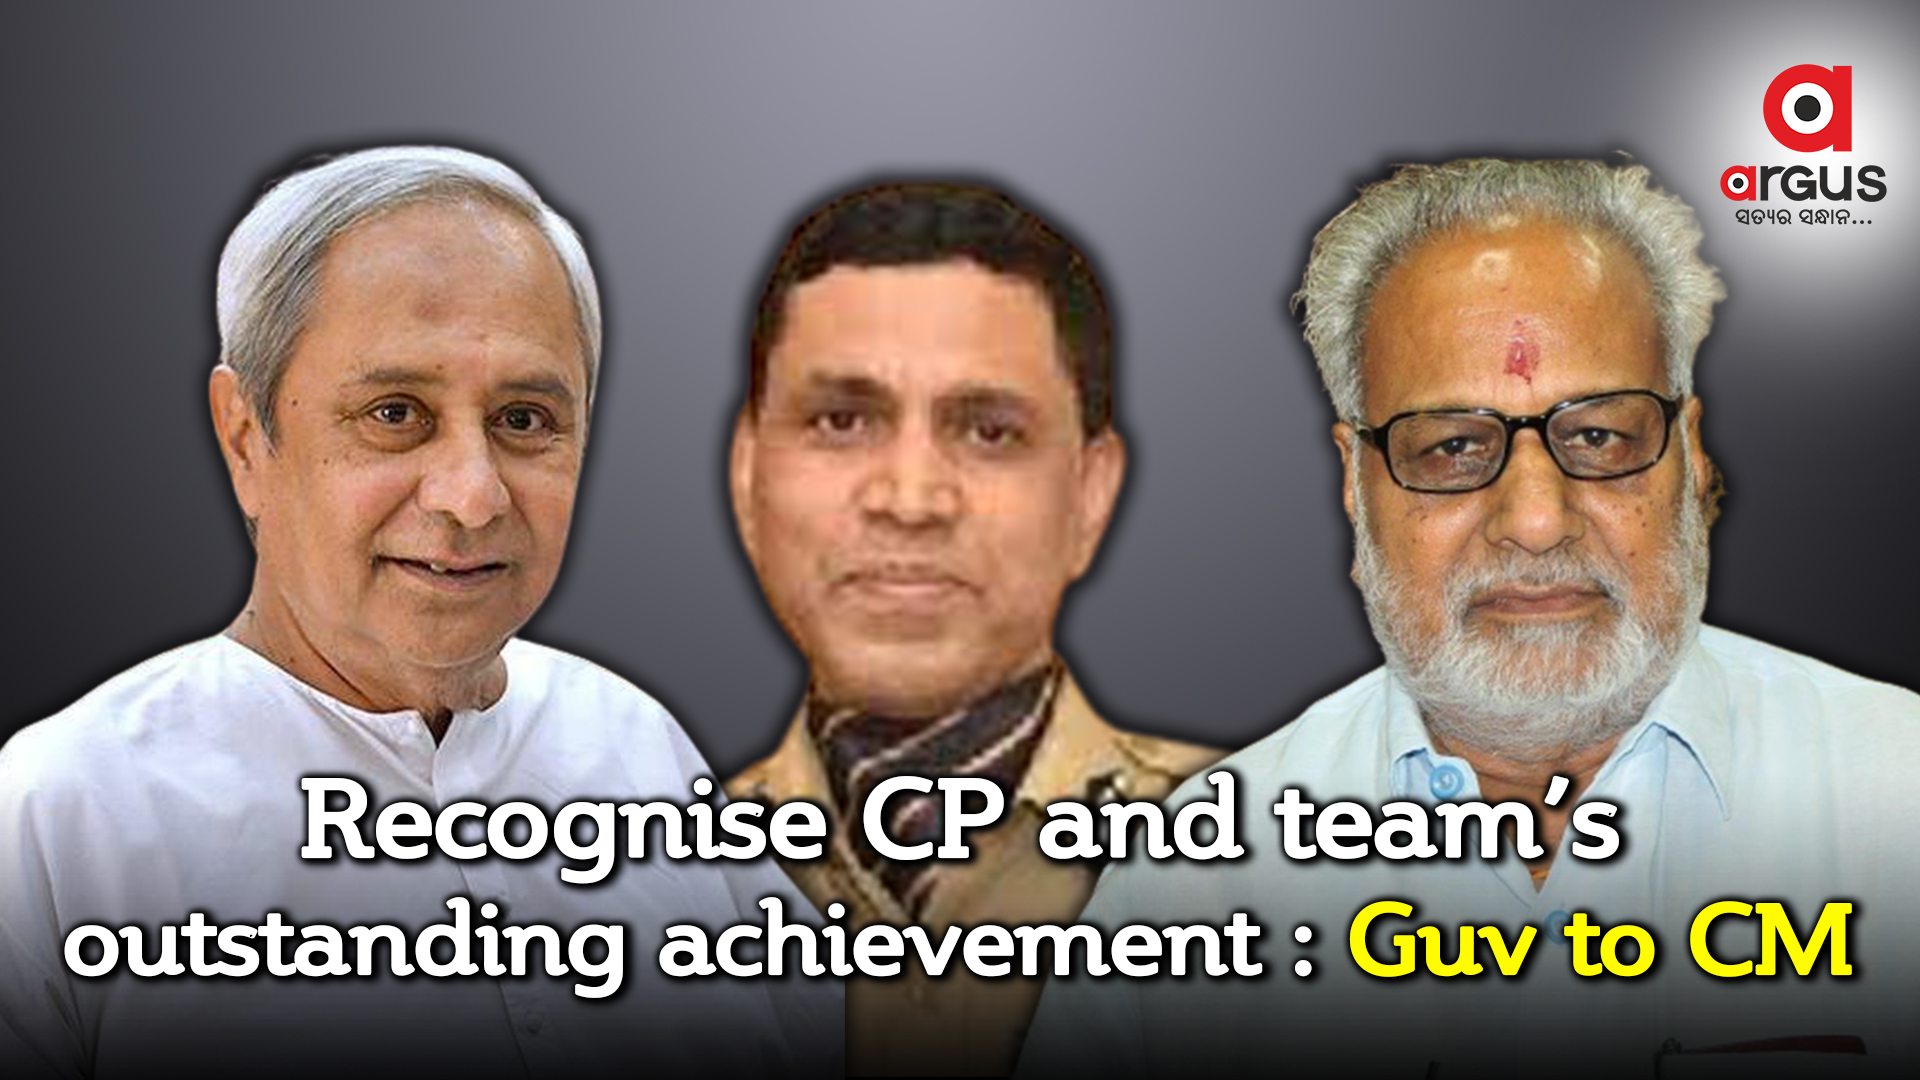 Recognise CP and team's outstanding achievement: Guv to CM